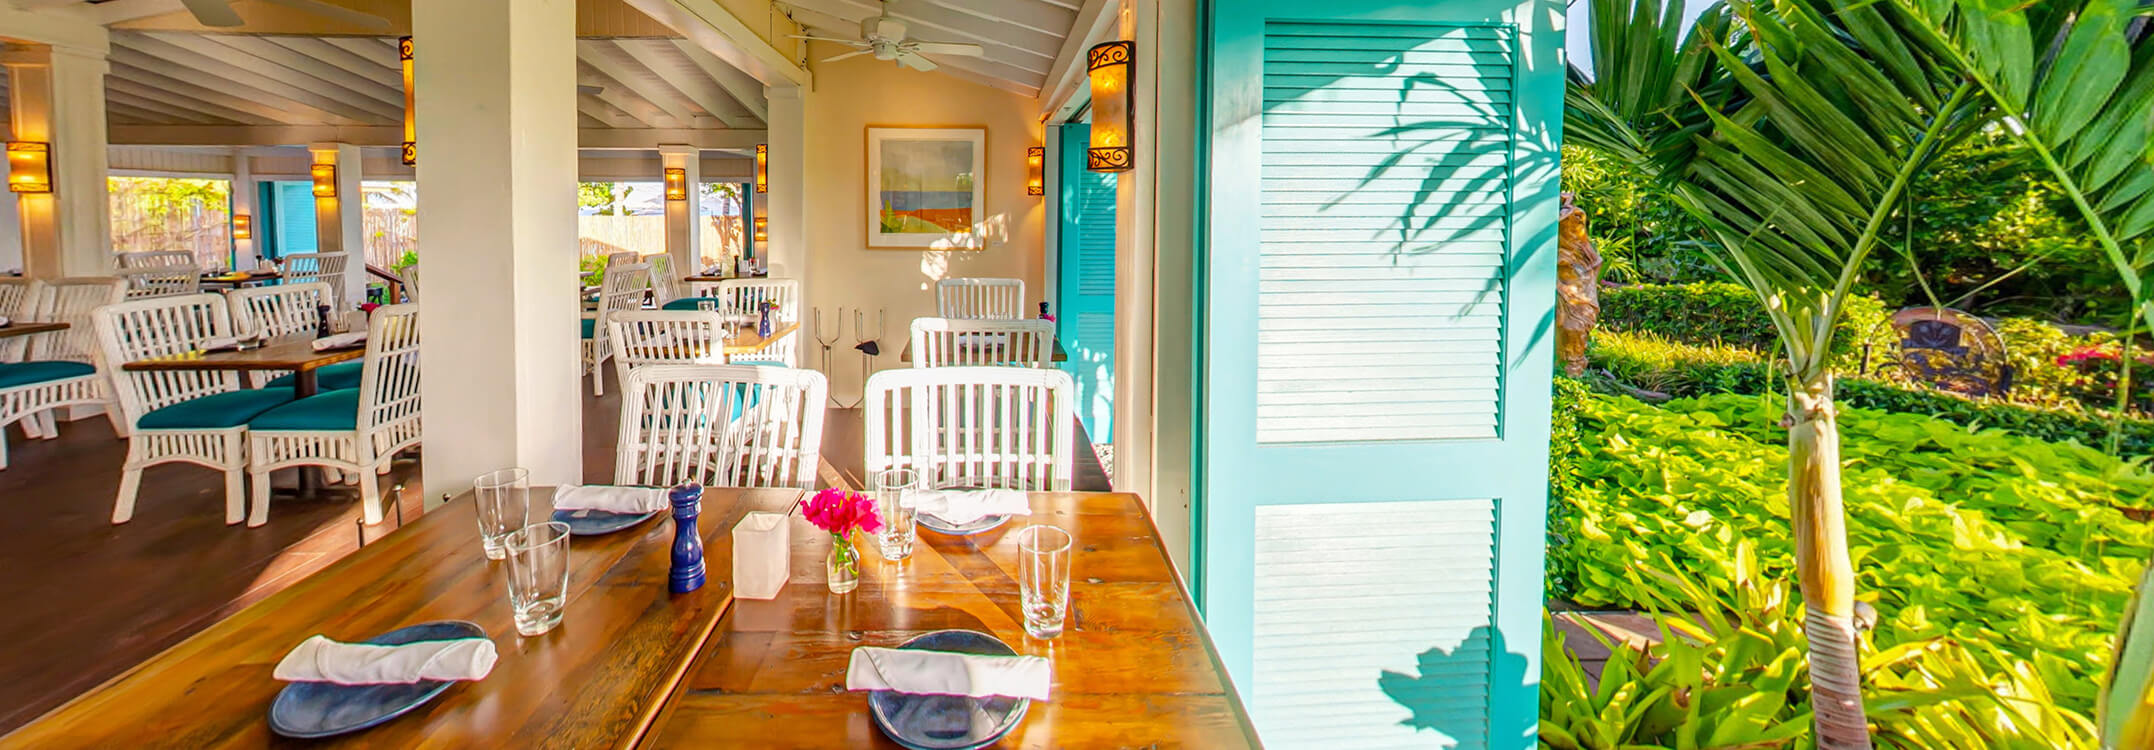 Open and airy Blanchards dining room with long teal shutters open to tropical garden